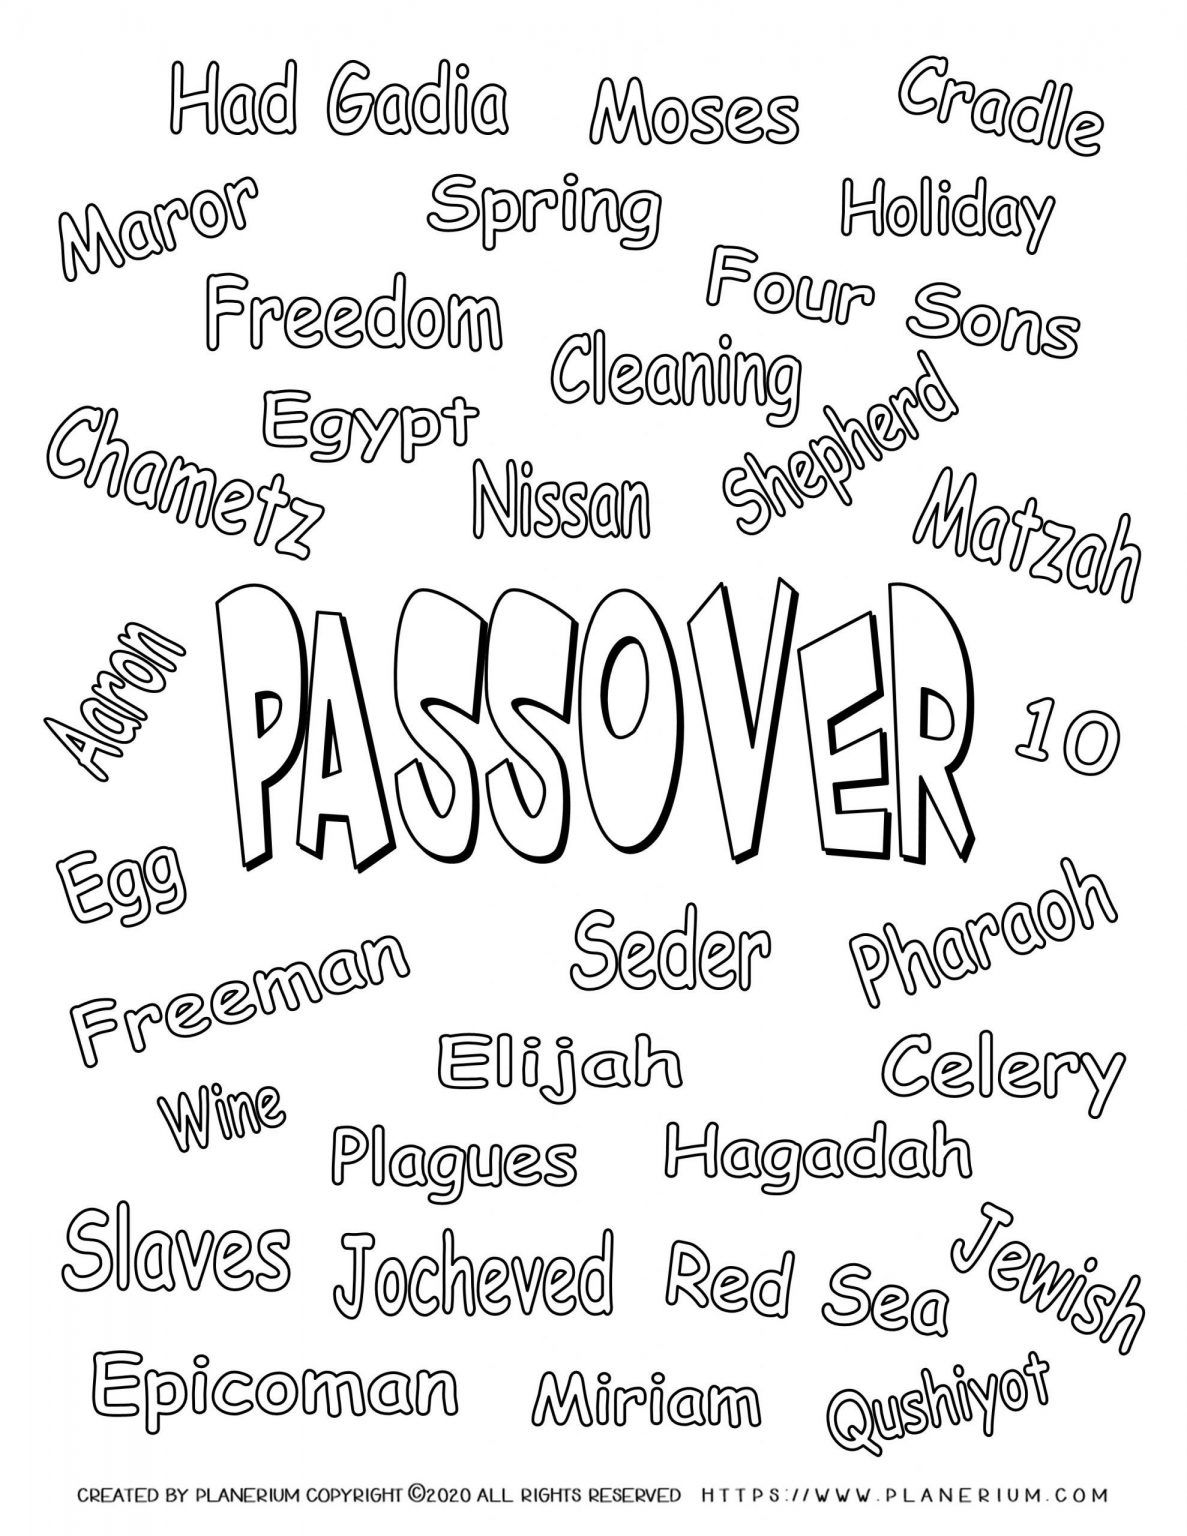 Best Printables For Passover 2021 Planerium In 2021 Passover Worksheets Passover Words [ 1536 x 1187 Pixel ]